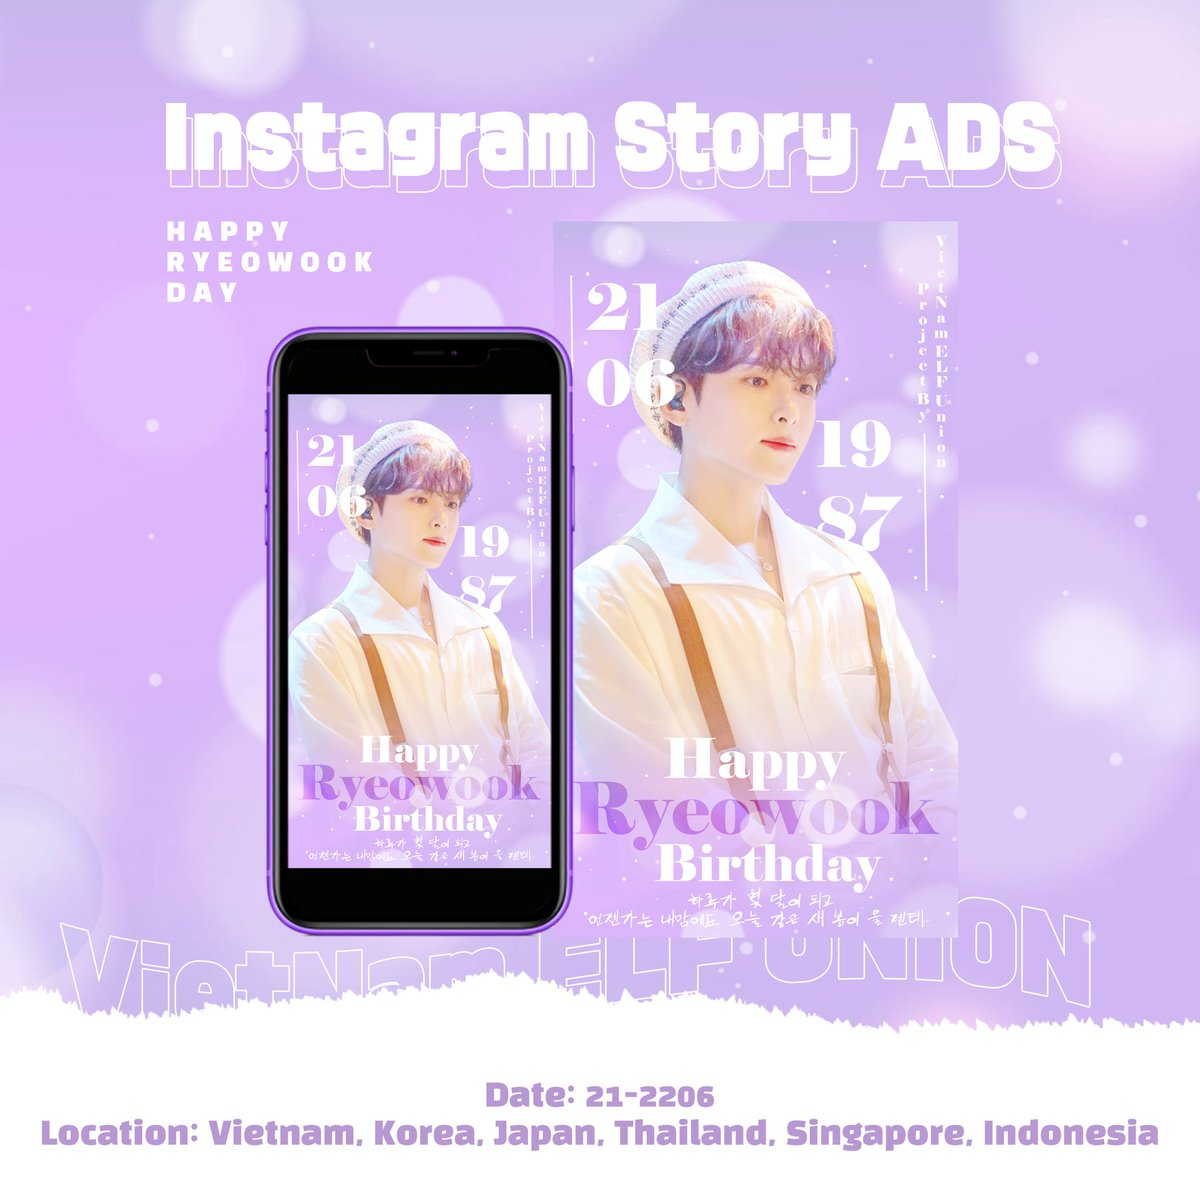 💜 HAPPY RYEOWOOK'S BIRTHDAY PROJECT 💜  This Instagram story ads will be available at: @vietnamelfunion0611 insta account  🗓 21 - 22.06.2020  📍 Vietnam, South Korea, Japan, Thailand, Singapore, Indonesia.  Please wait for it!   #HappyRyeowookDay #SuperJunior  #VEU #VietnamELF https://t.co/AfZrsHrFfS